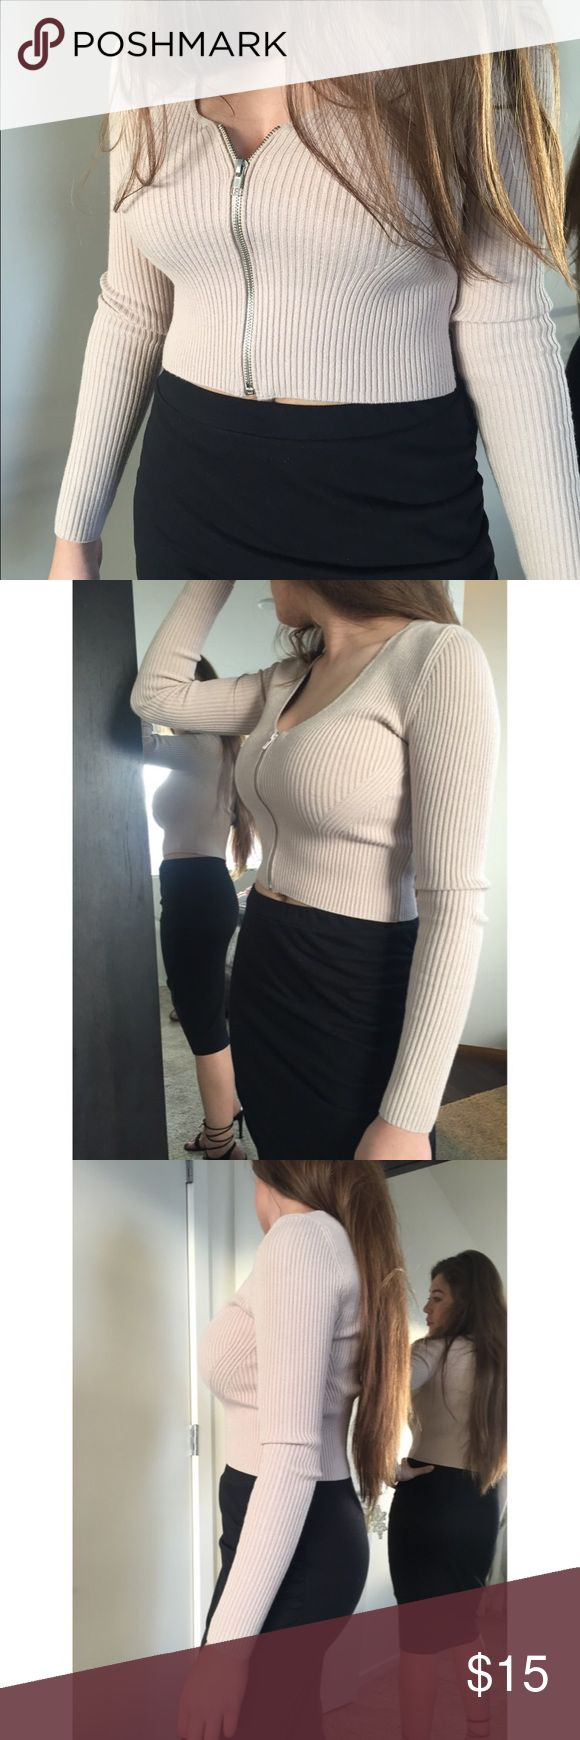 Beige zip up sweatshirt Top Zipper top. Thick material. Crop. Forever 21 Tops Crop Tops